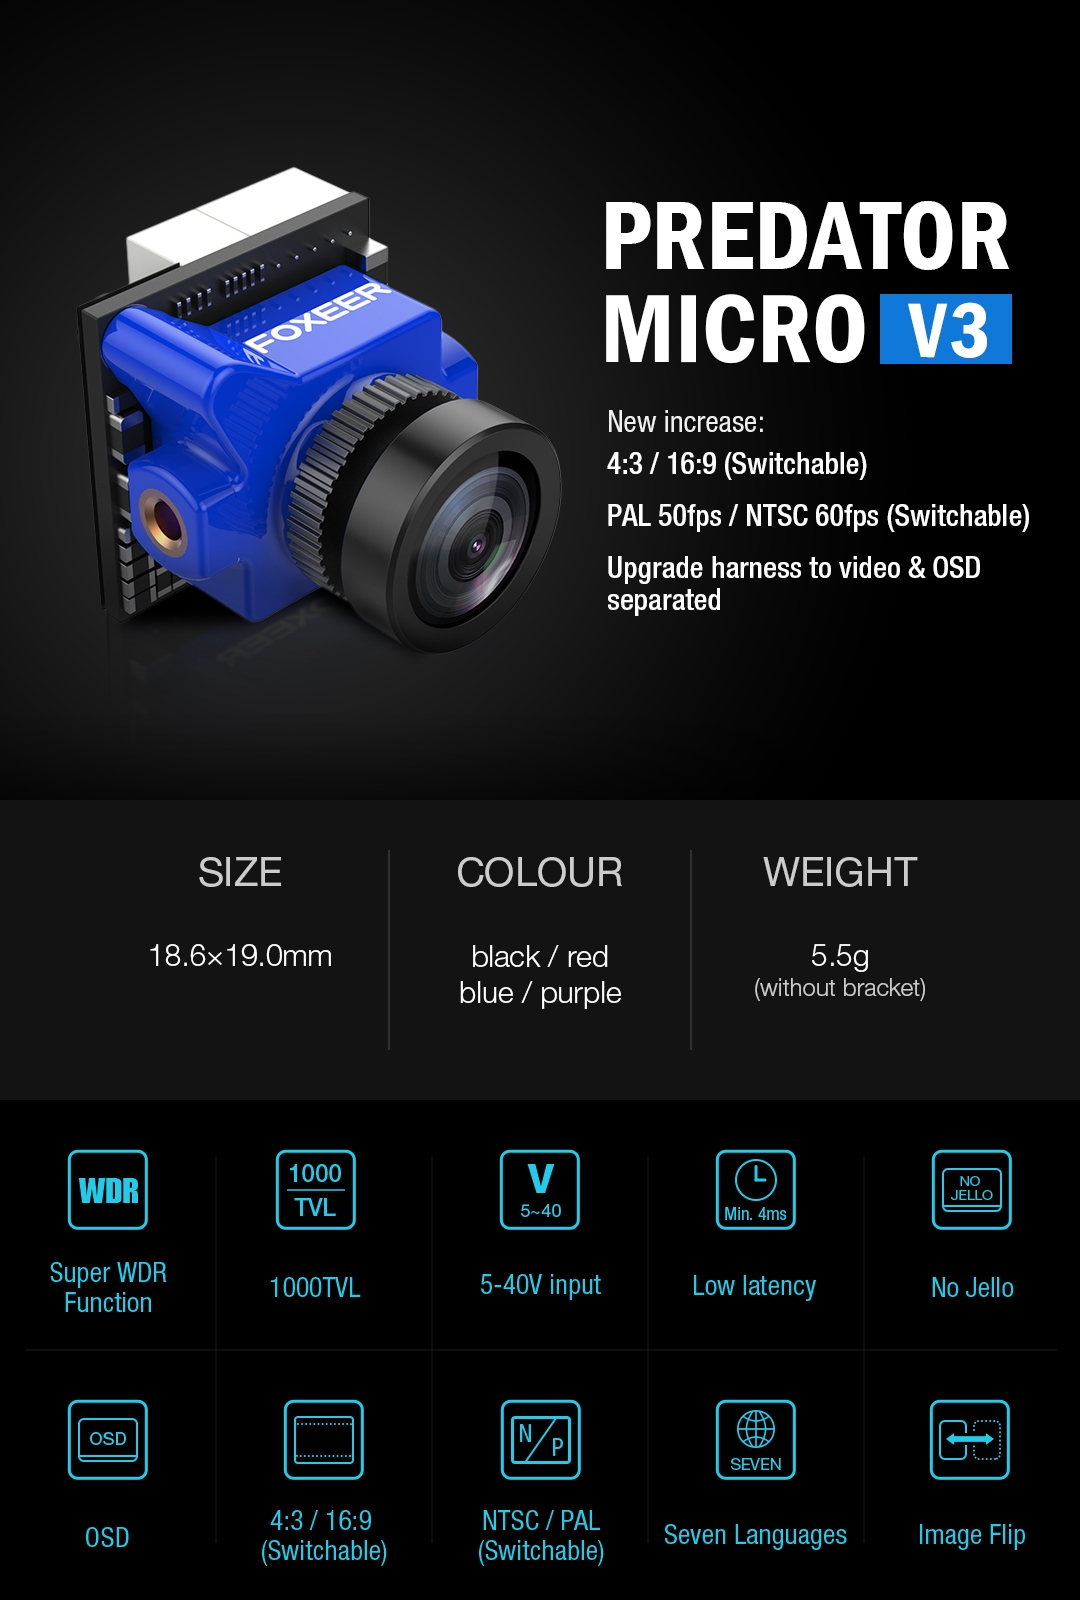 Foxeer Predator Micro V3 16:9/4:3 PAL/NTSC Switchable Super WDR 4ms Latency OSD FPV Camera